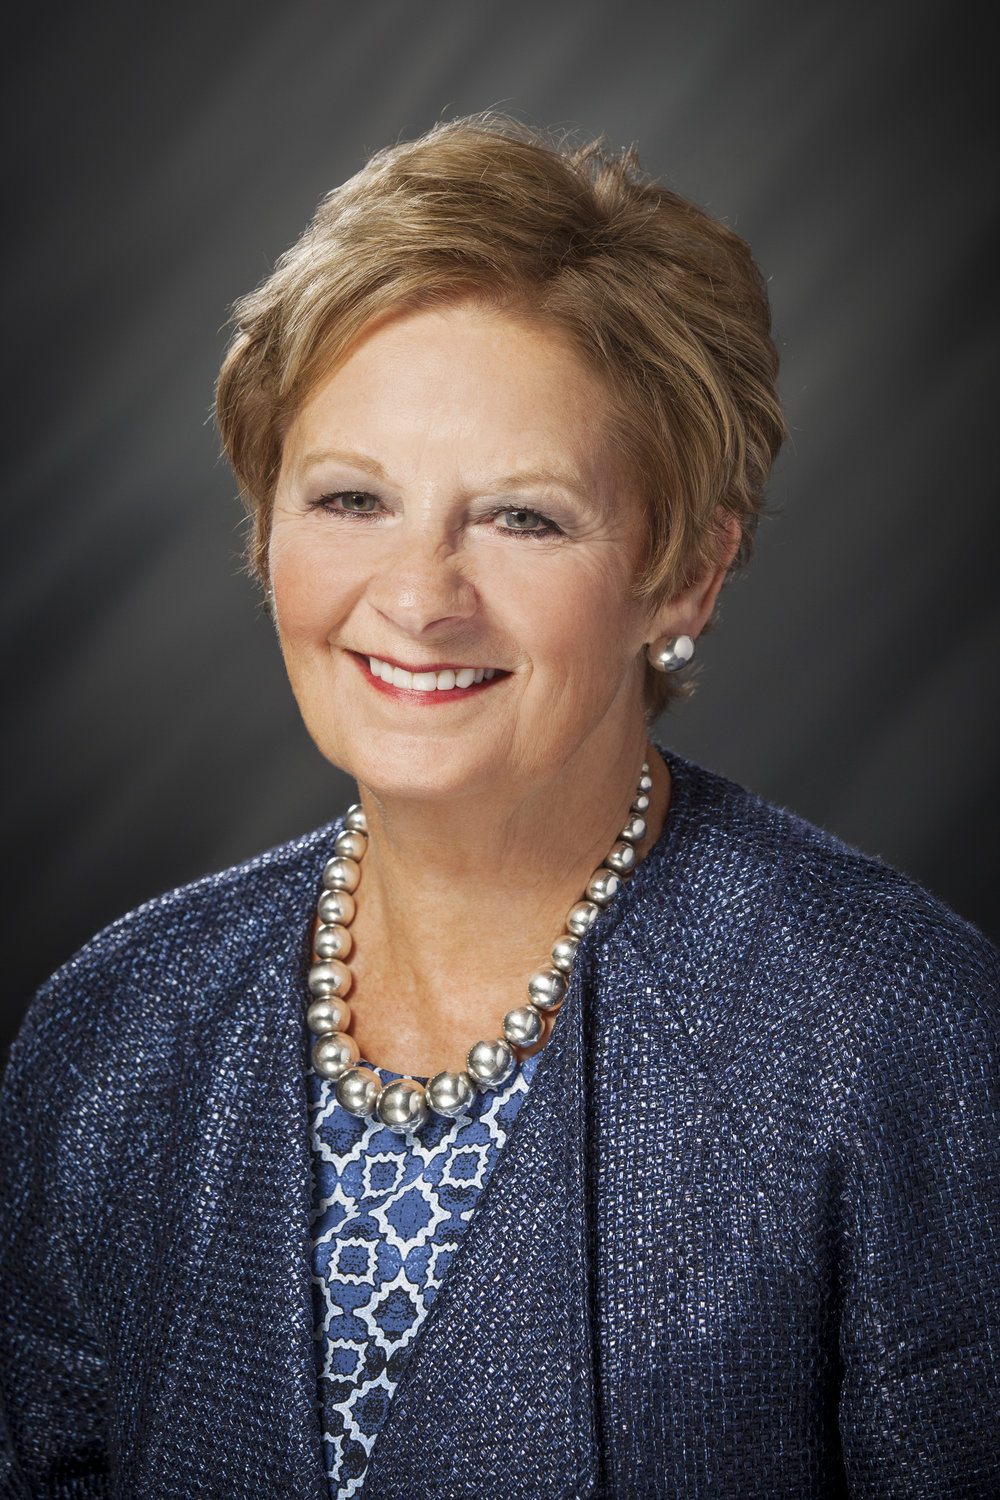 Indiana Secretary of State Connie Lawson